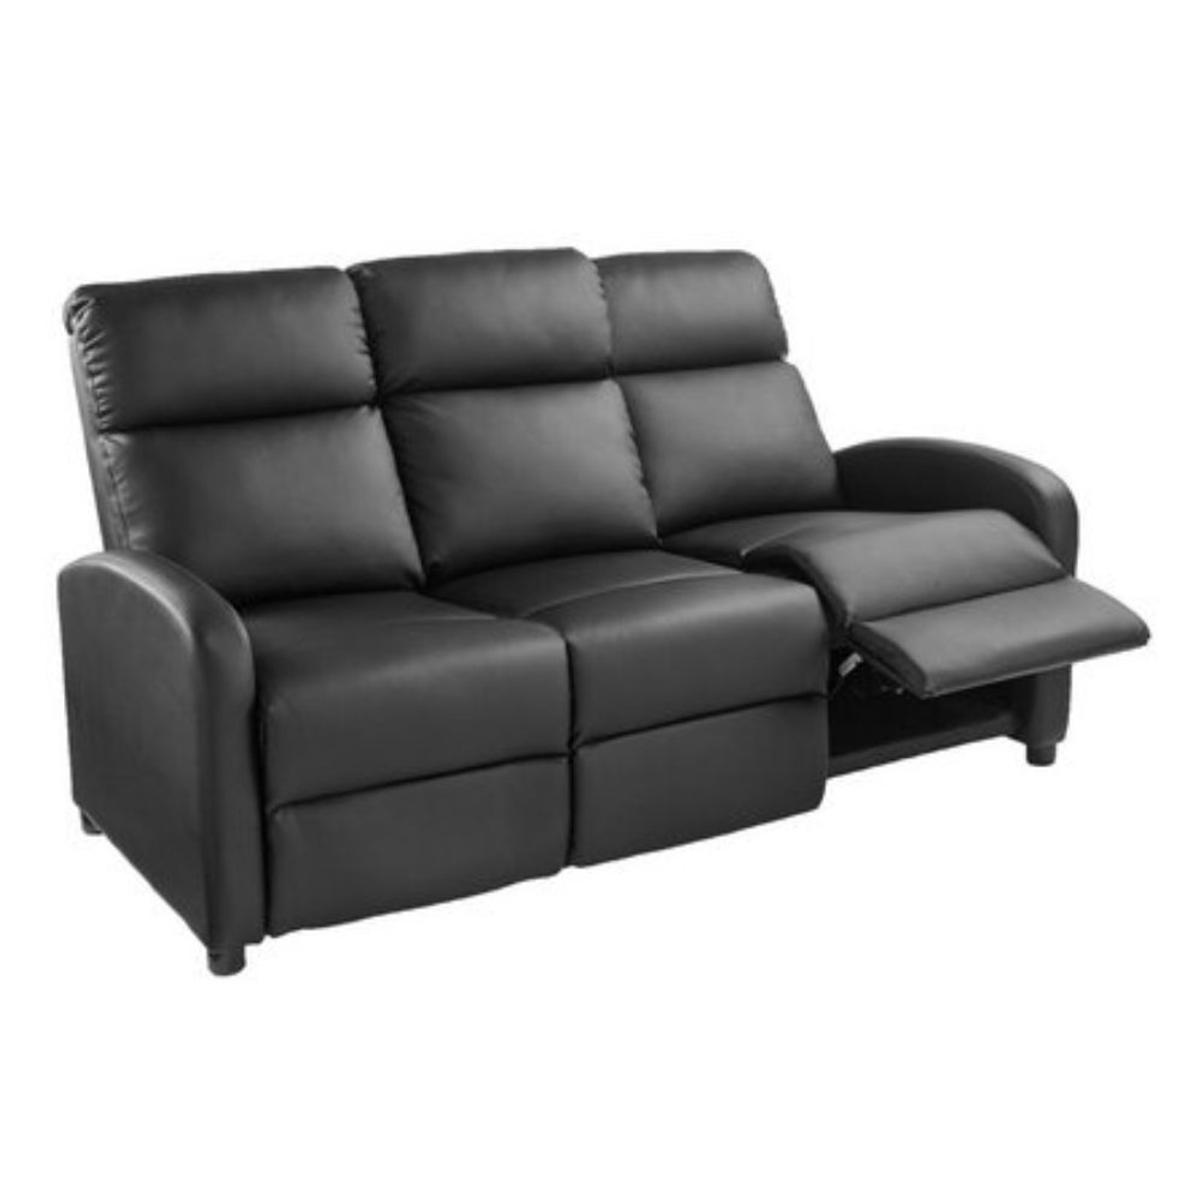 3 Seater Recliner Sofa Black Couch F. Leather